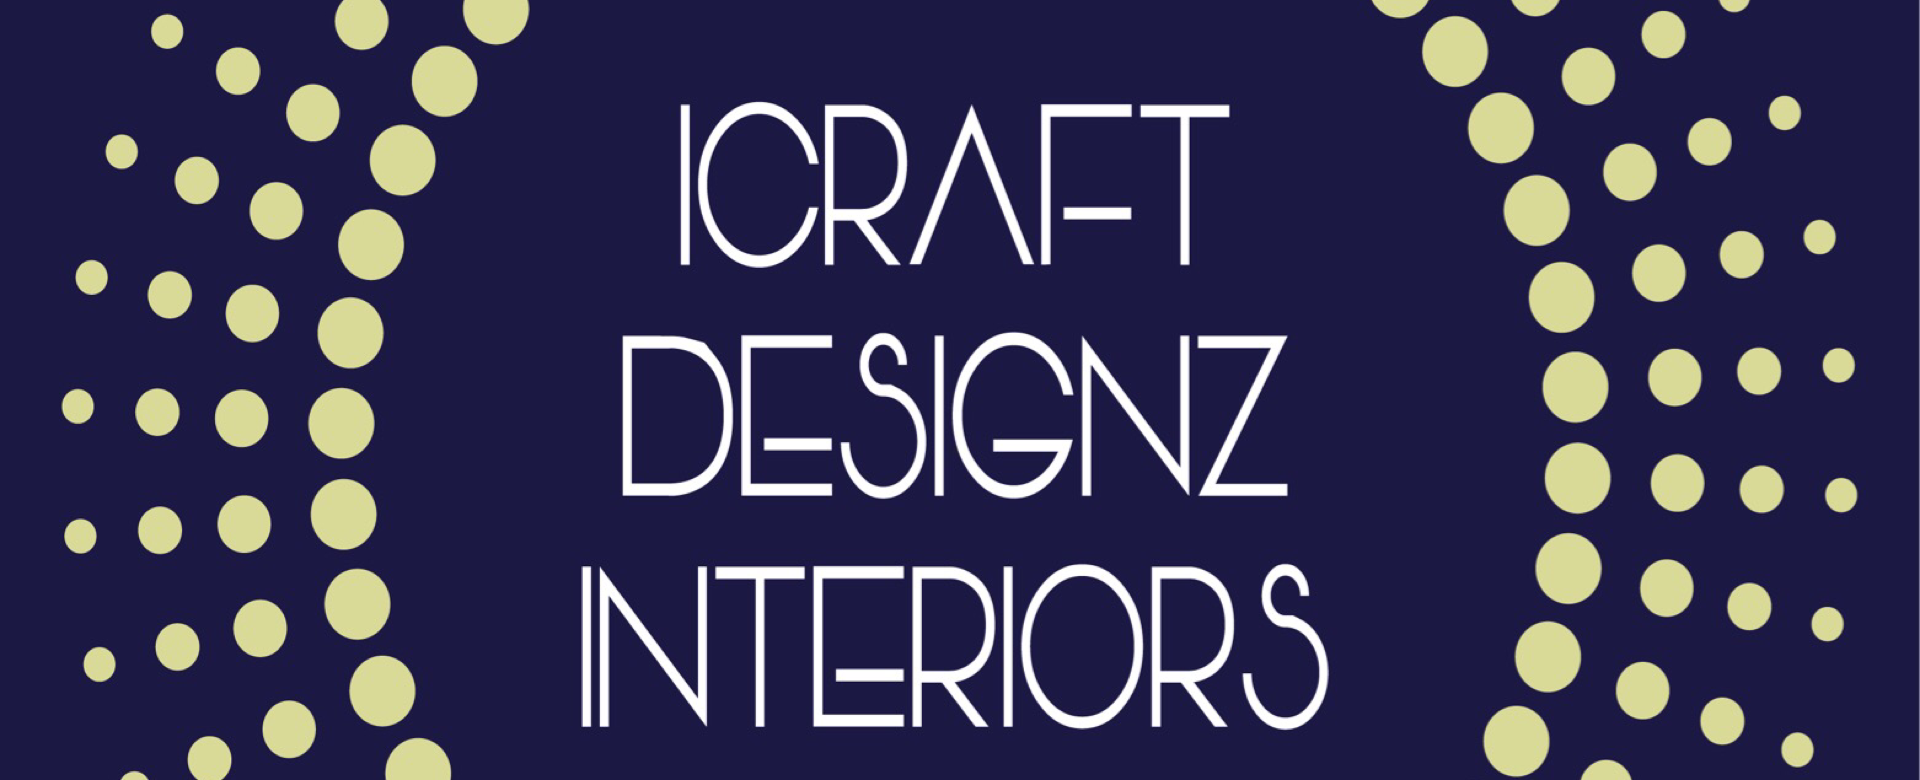 Icraft designz and interiors